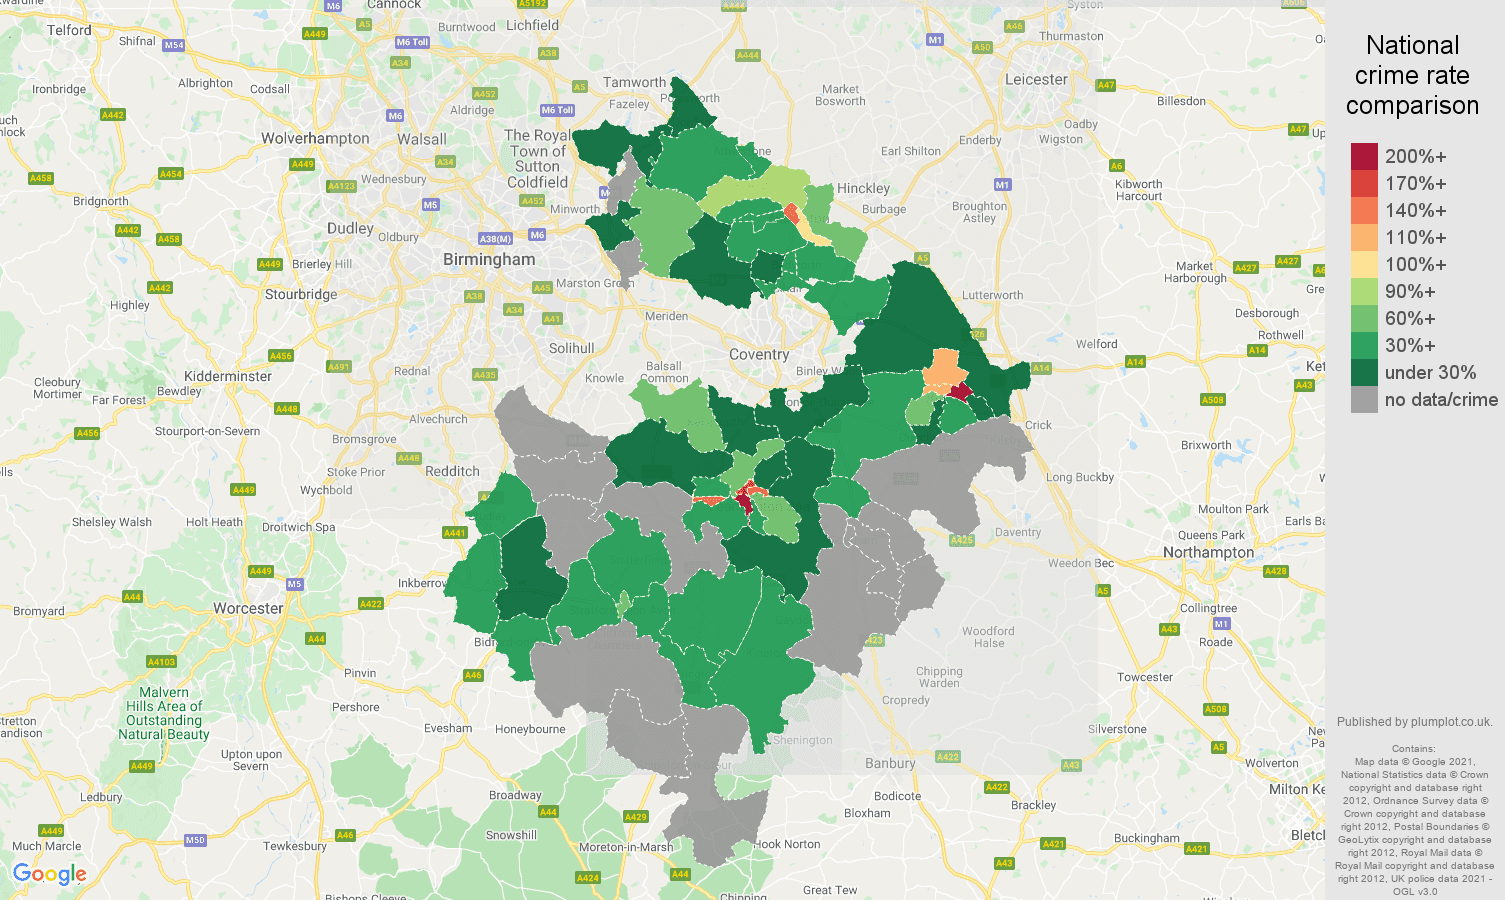 Warwickshire bicycle theft crime rate comparison map